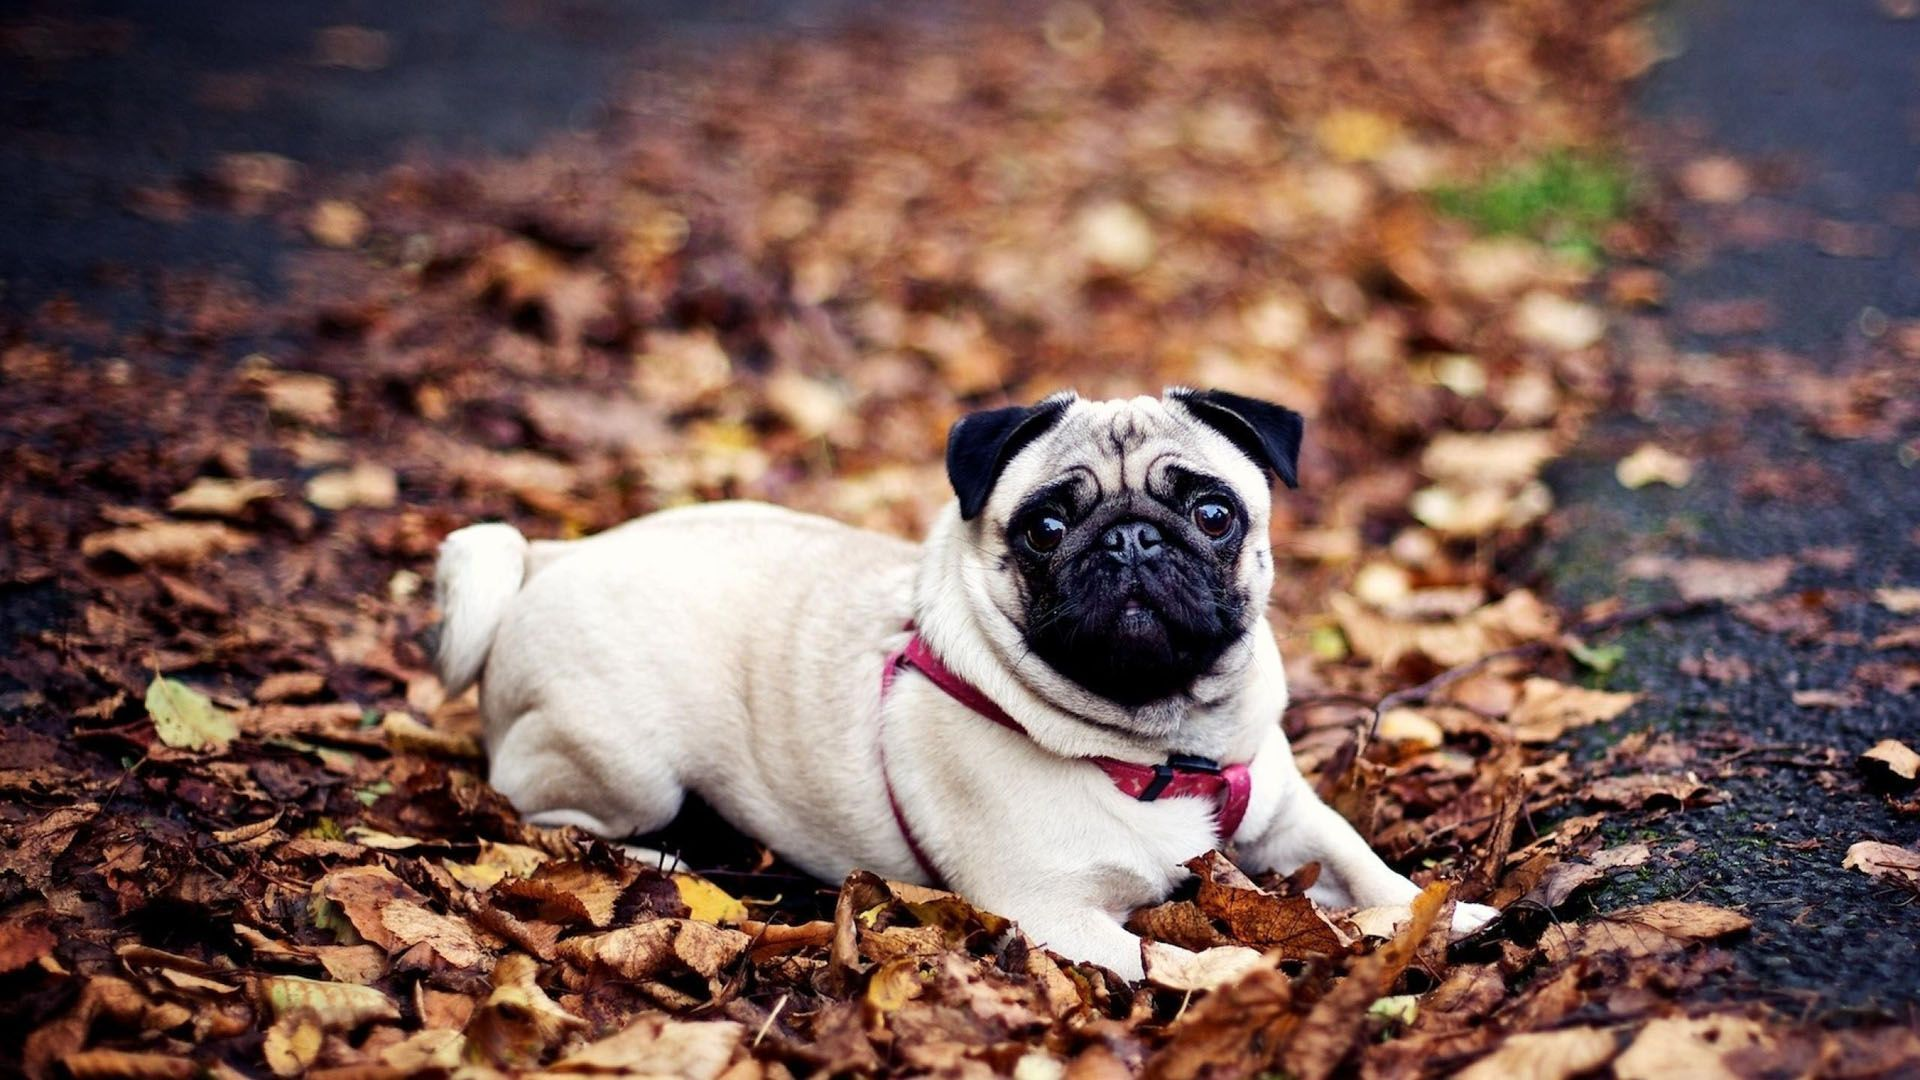 Pug Dog Wallpapers Pug Dog Pictures Free Download Cool Wallpapers Cute Pugs Pugs Funny Pug Puppies